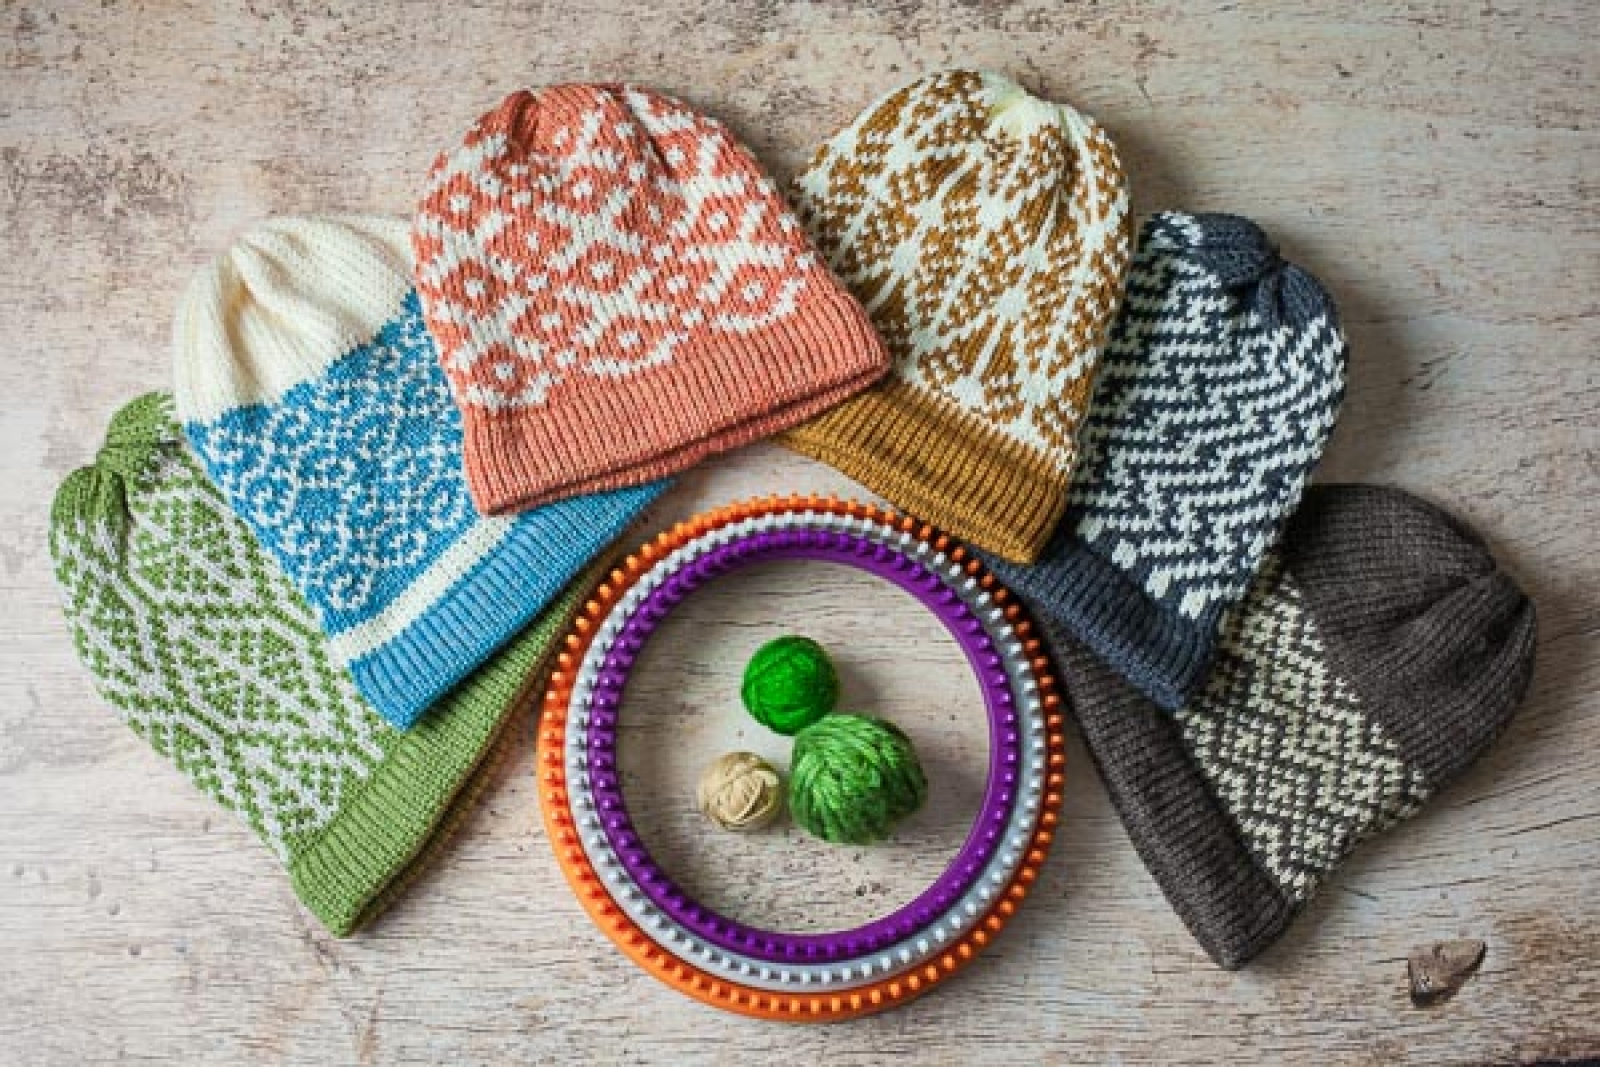 Round Loom Knitting Patterns Download Loom Knit Fair Isle Hat Pattern Collection Six Fair Isle Hat Loom Knitting Patterns Included Pdf Download